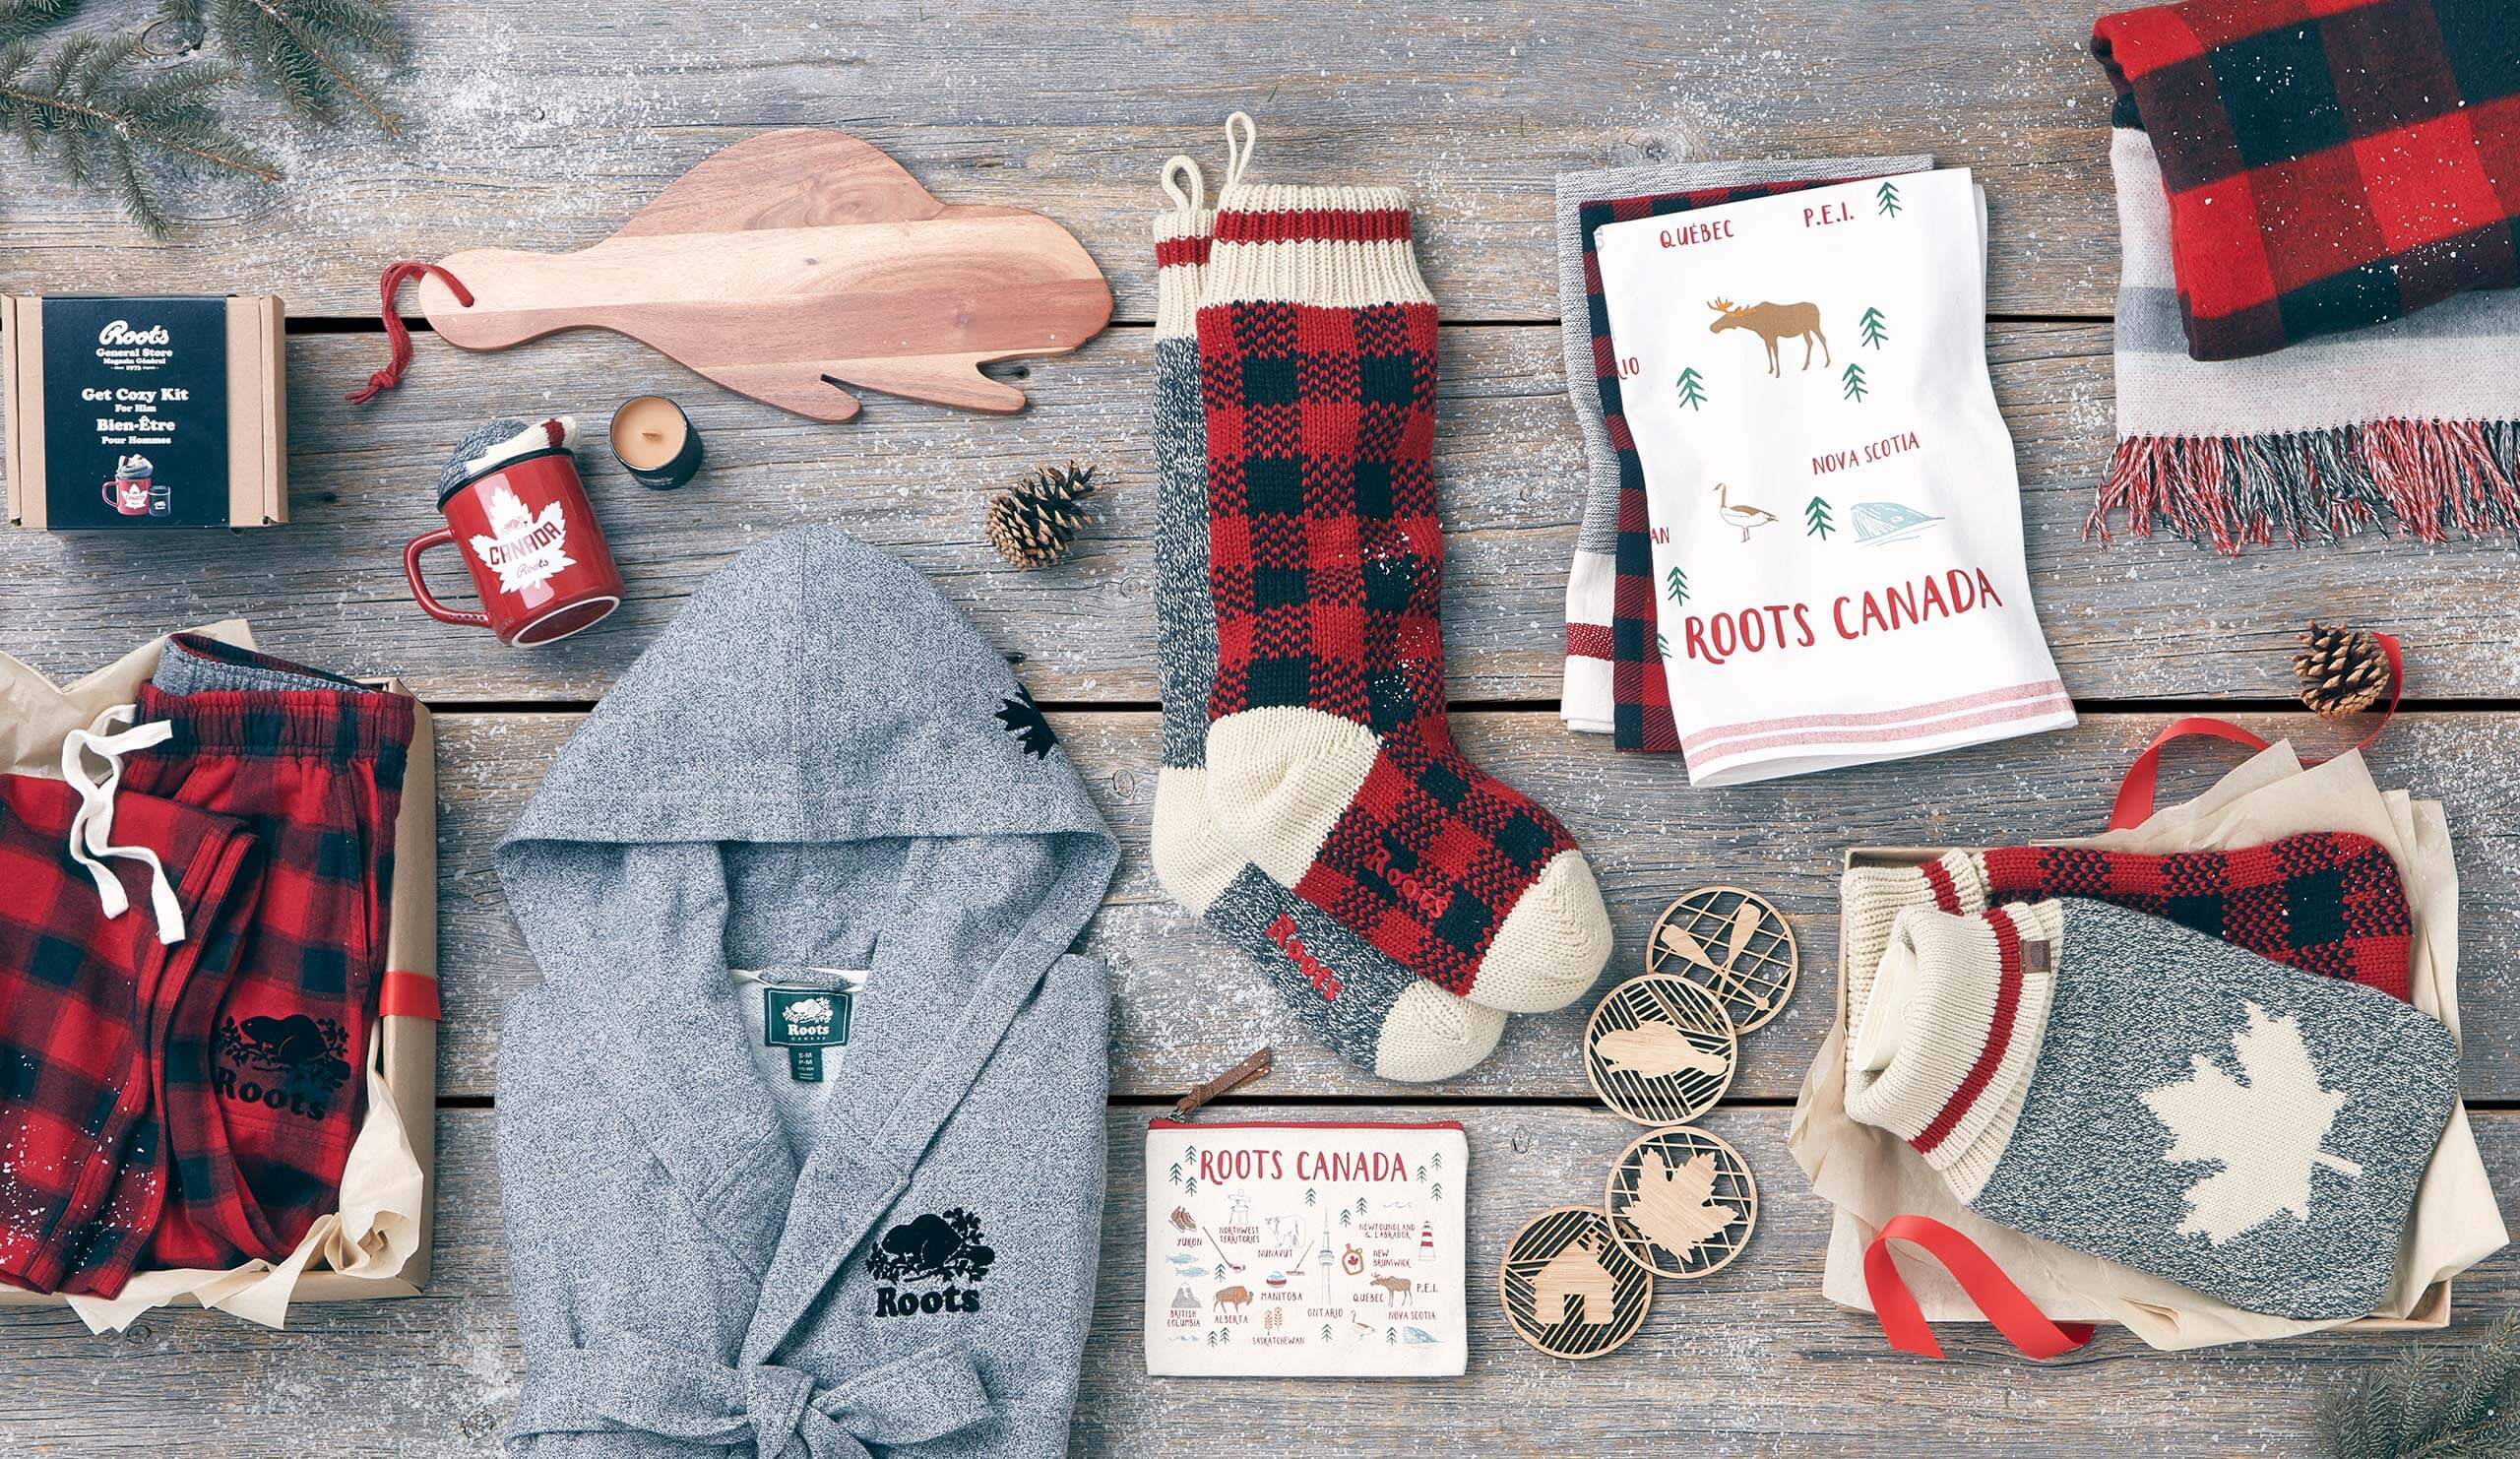 Our #FavouriteThings Holiday Gift Suggestions from Roots